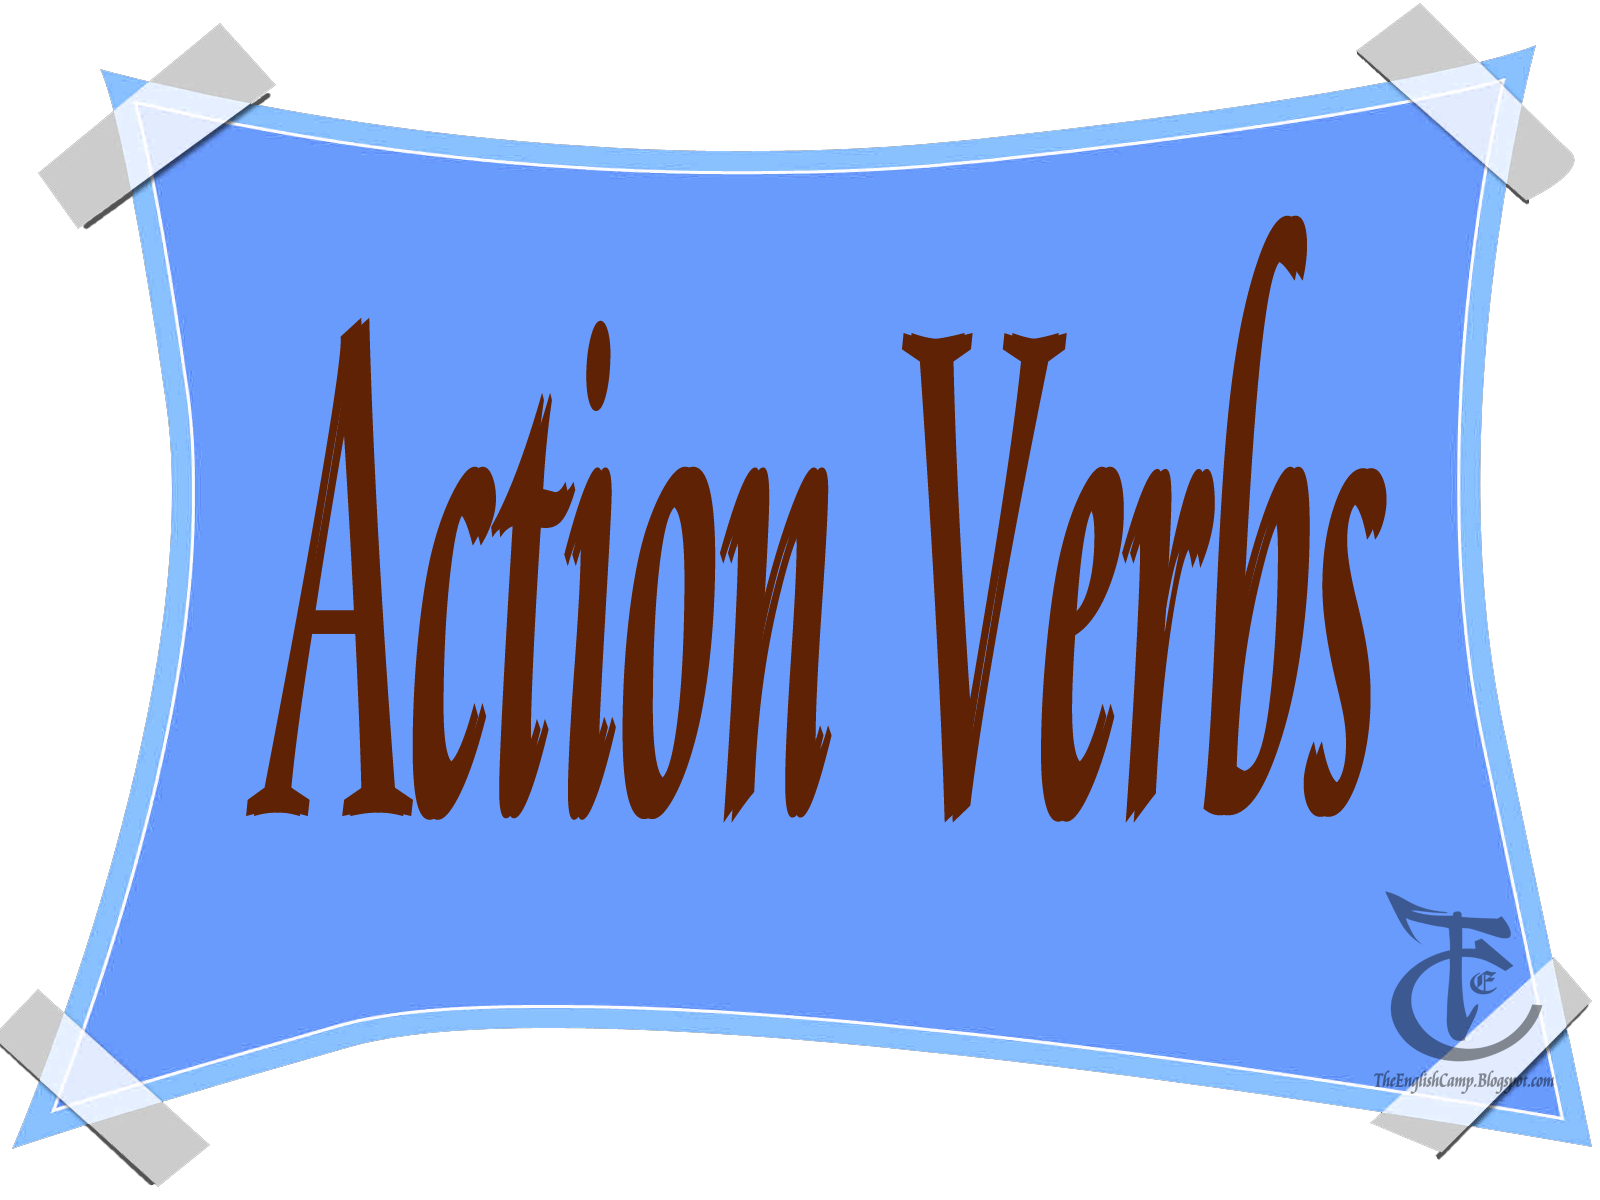 Action verbs express action and are the most common verbs